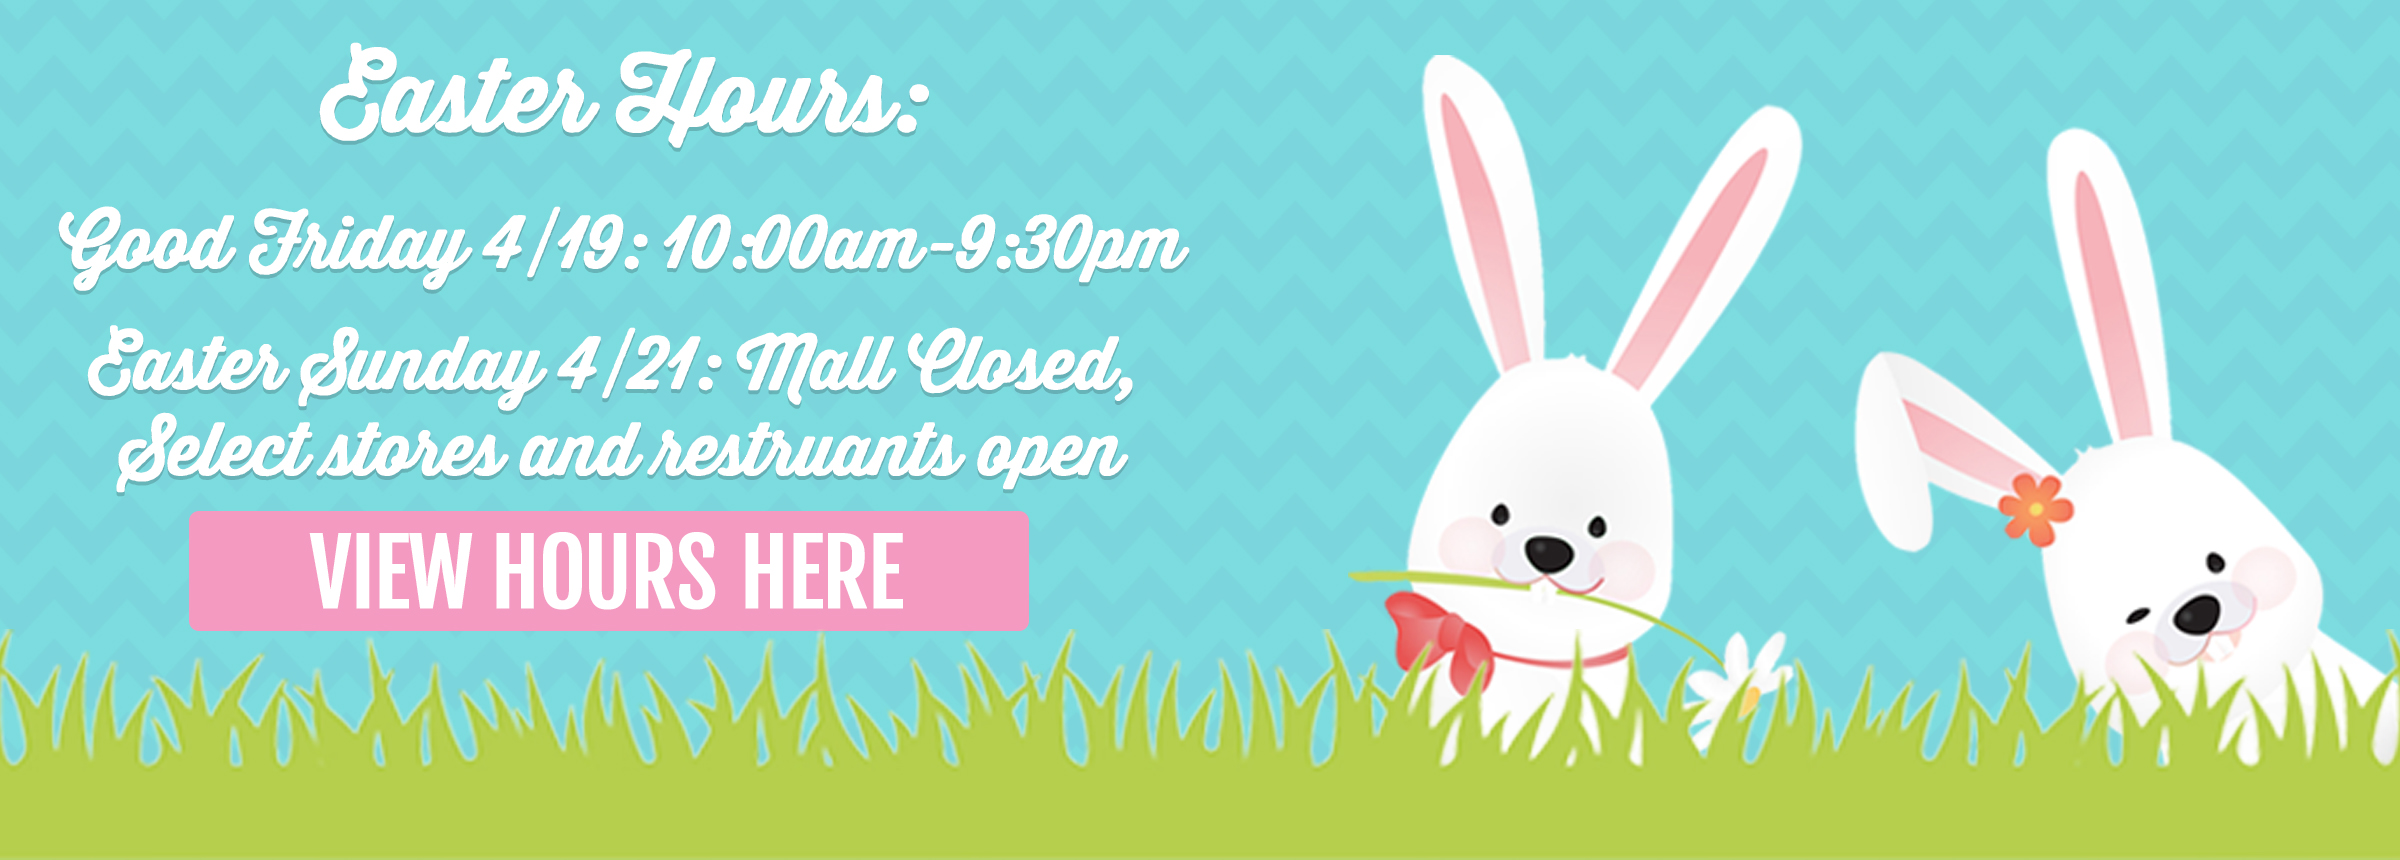 2019 Easter Hours Hero Image 2400x860